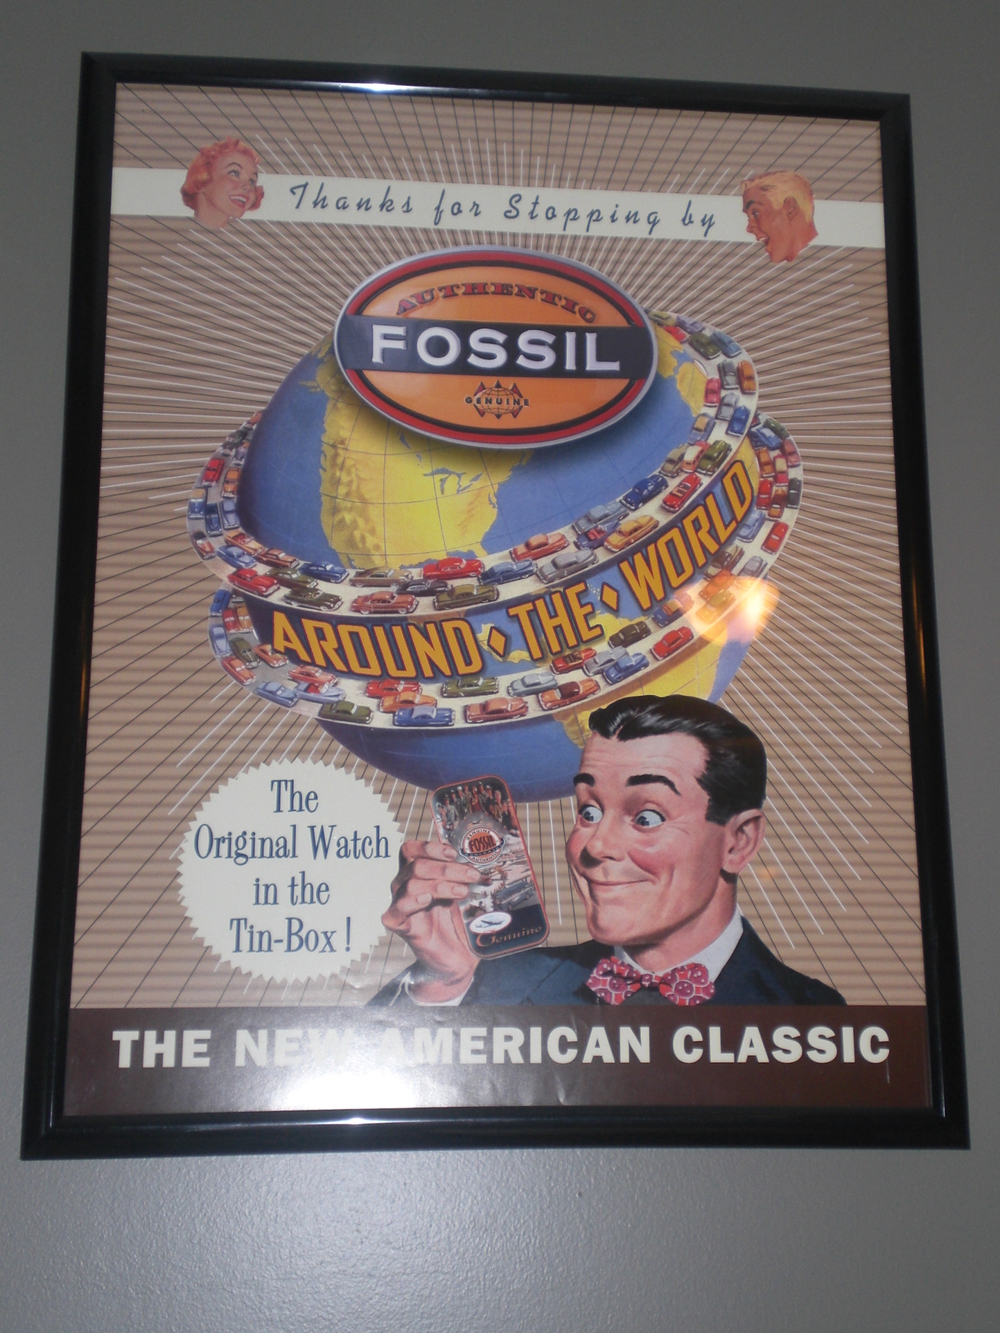 The only Fossil poster hanging in my office